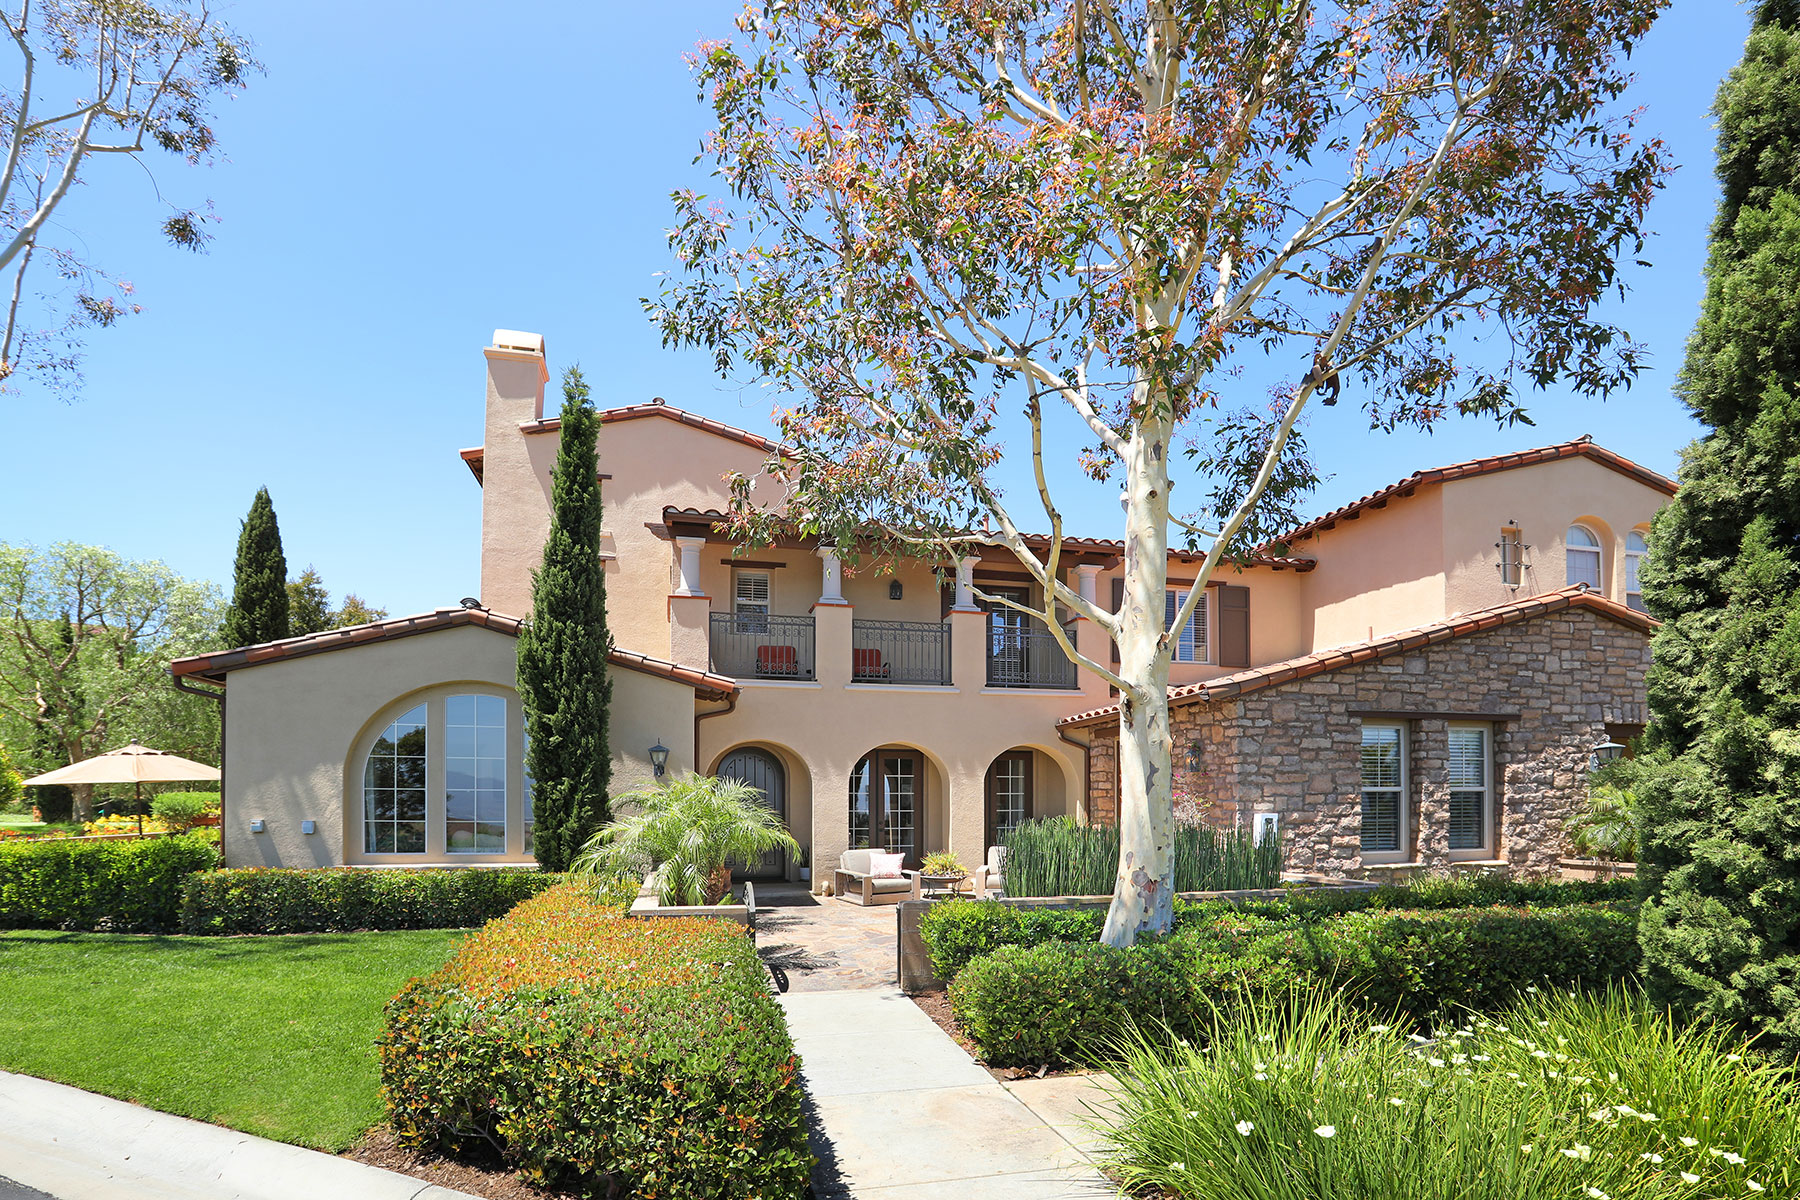 Single Family Home for Sale at 10 San Sovino Newport Coast, California, 92657 United States